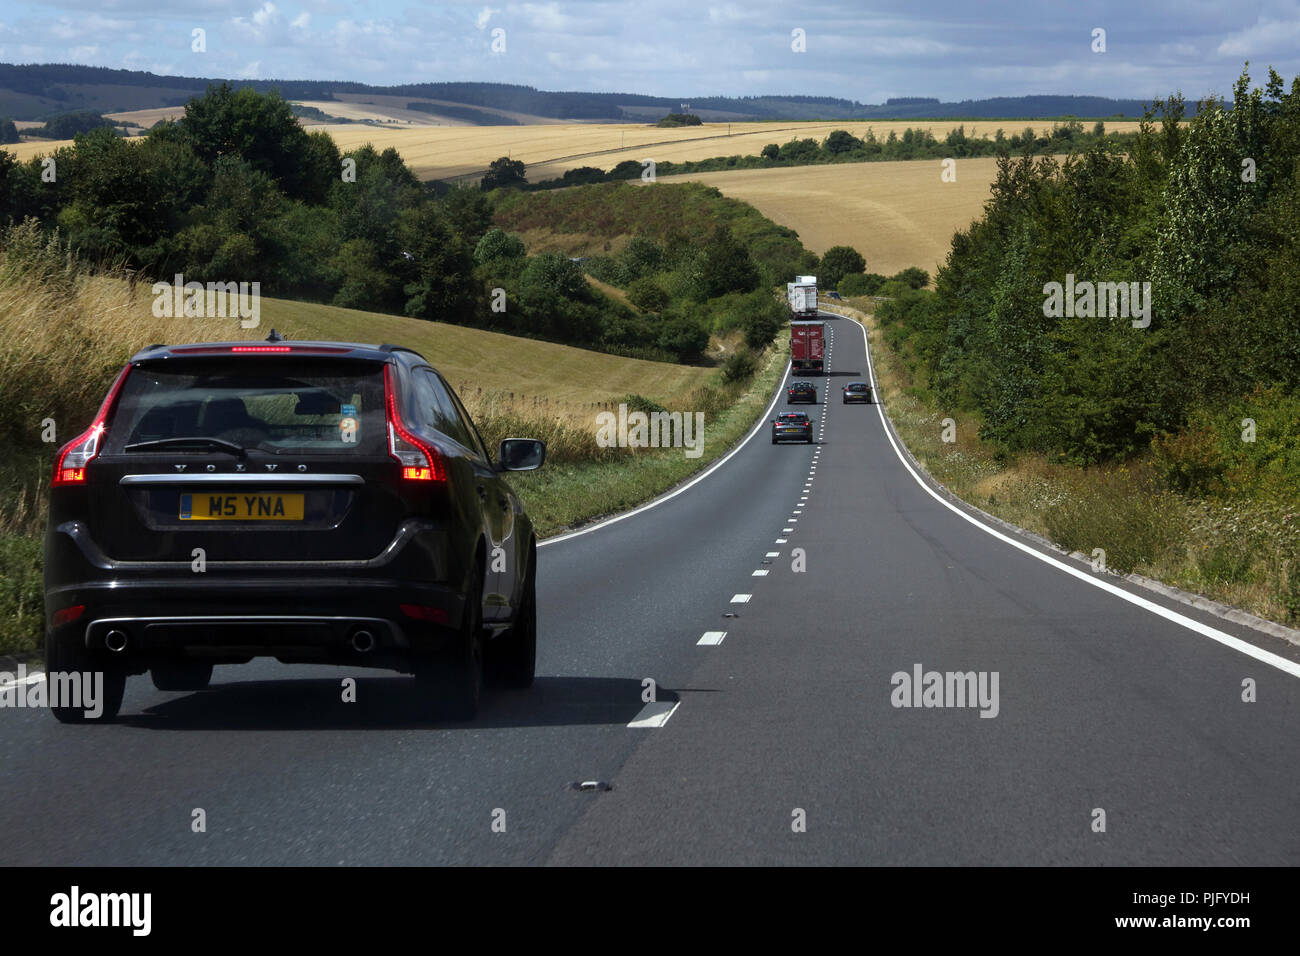 Wiltshire England Traffic on the A303 Trunk Road - Stock Image